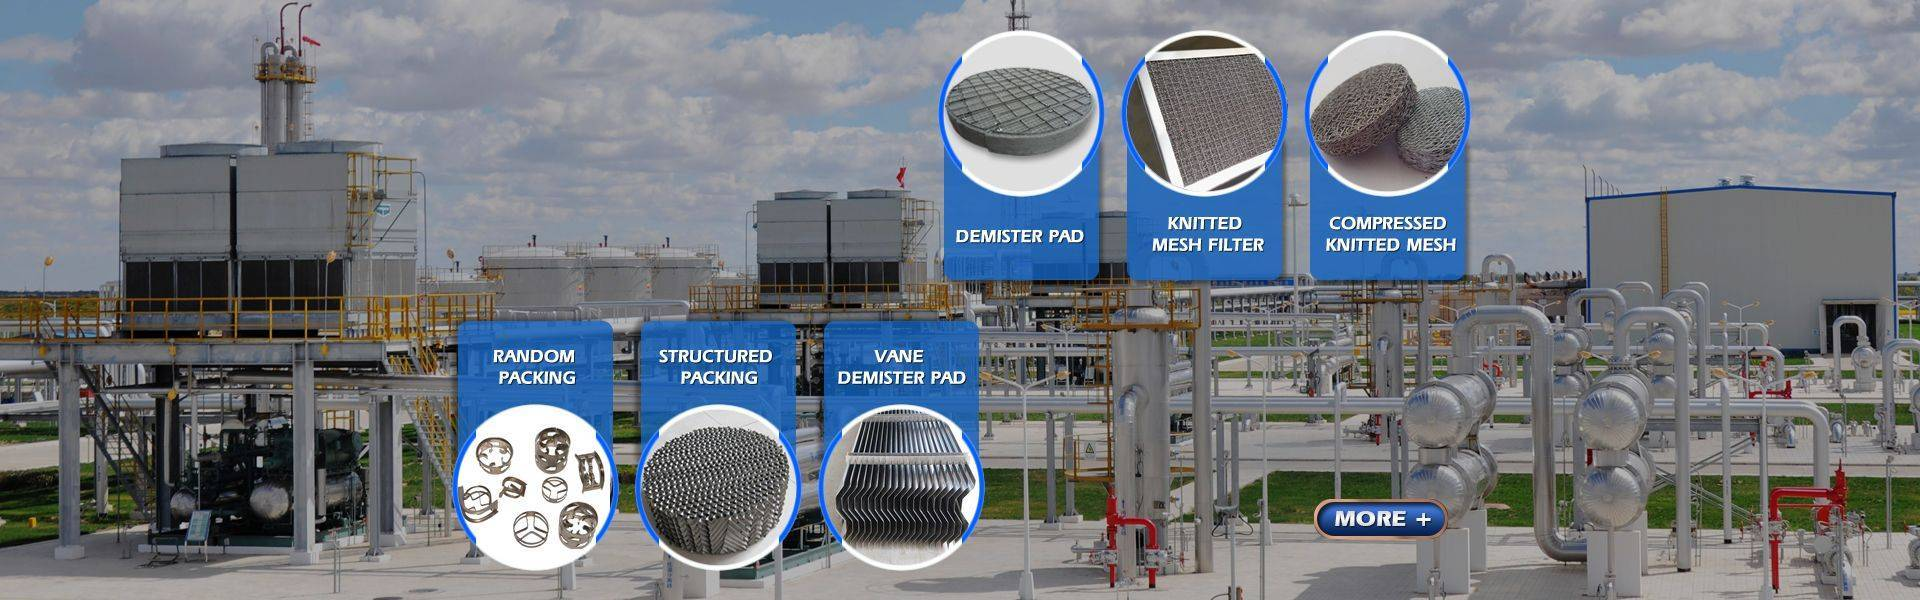 six different kinds of demister pad used in the chemical industries.